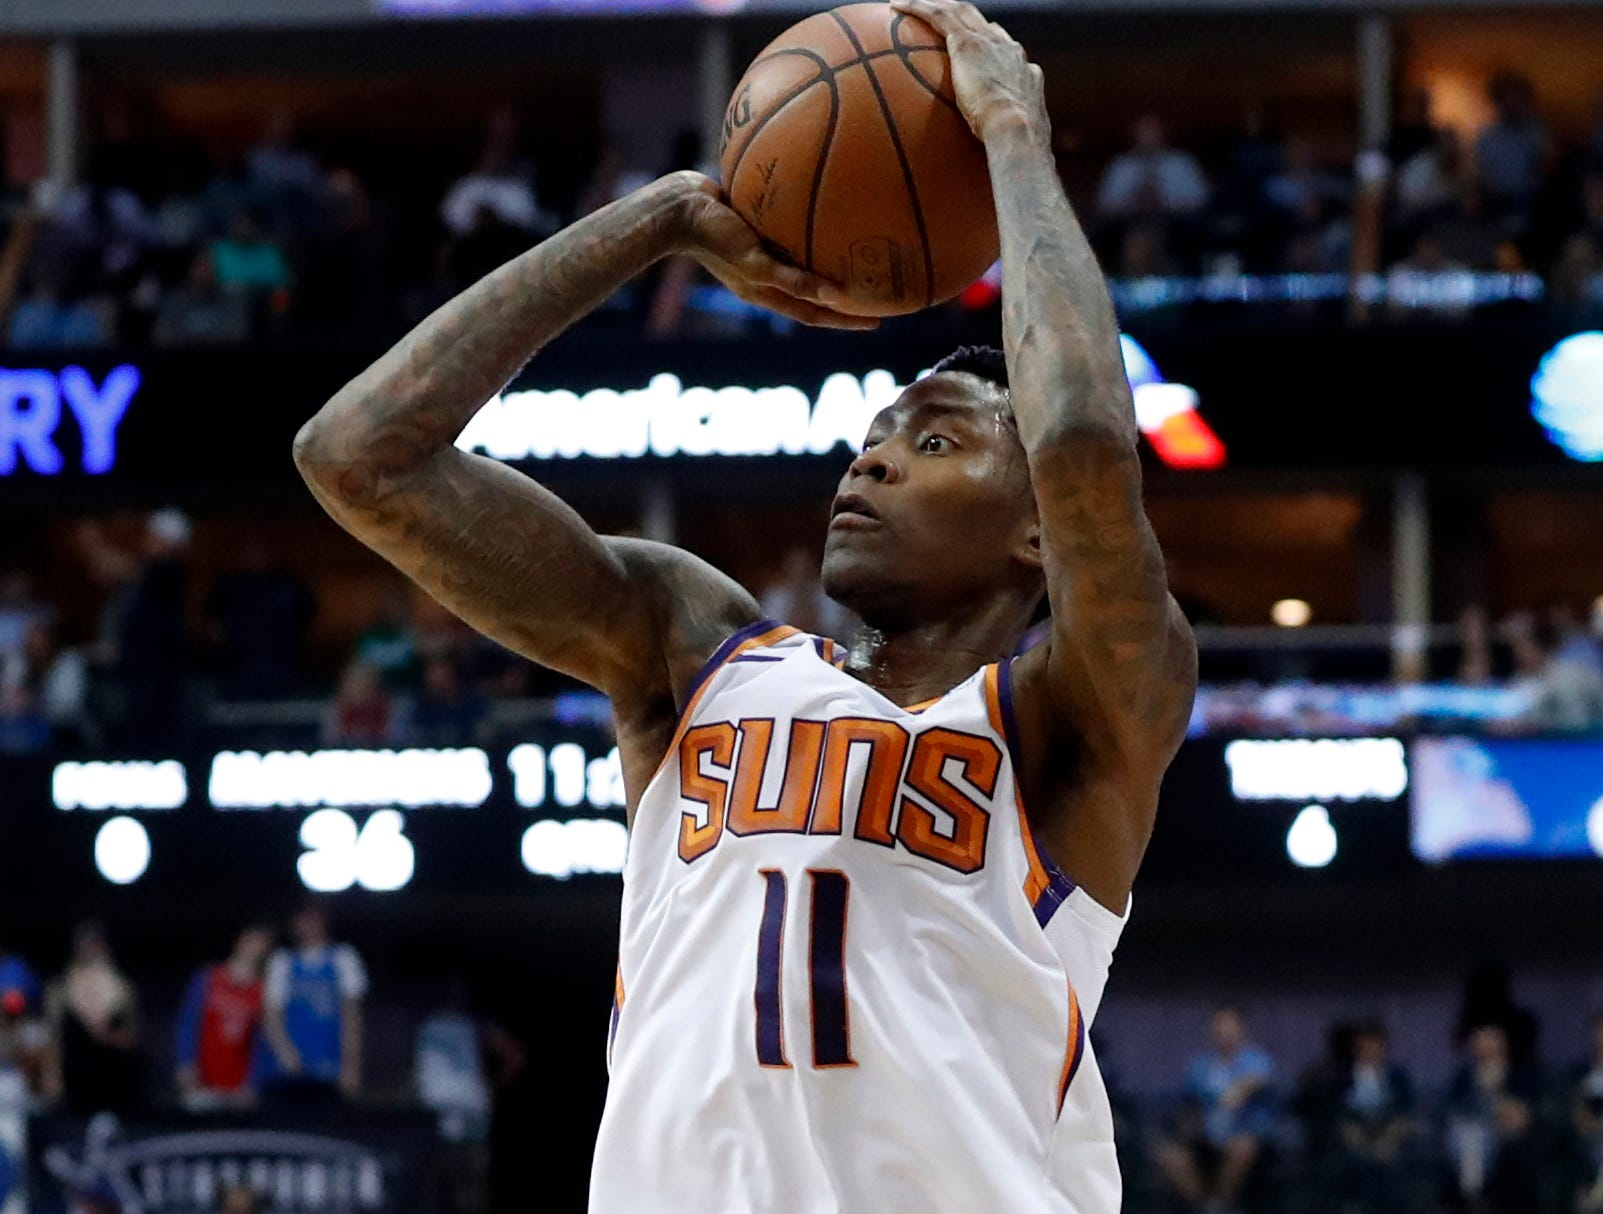 Phoenix Suns guard Jamal Crawford shoots during the first half of the team's NBA basketball game against the Dallas Mavericks in Dallas, Tuesday, April 9, 2019. (AP Photo/Tony Gutierrez)